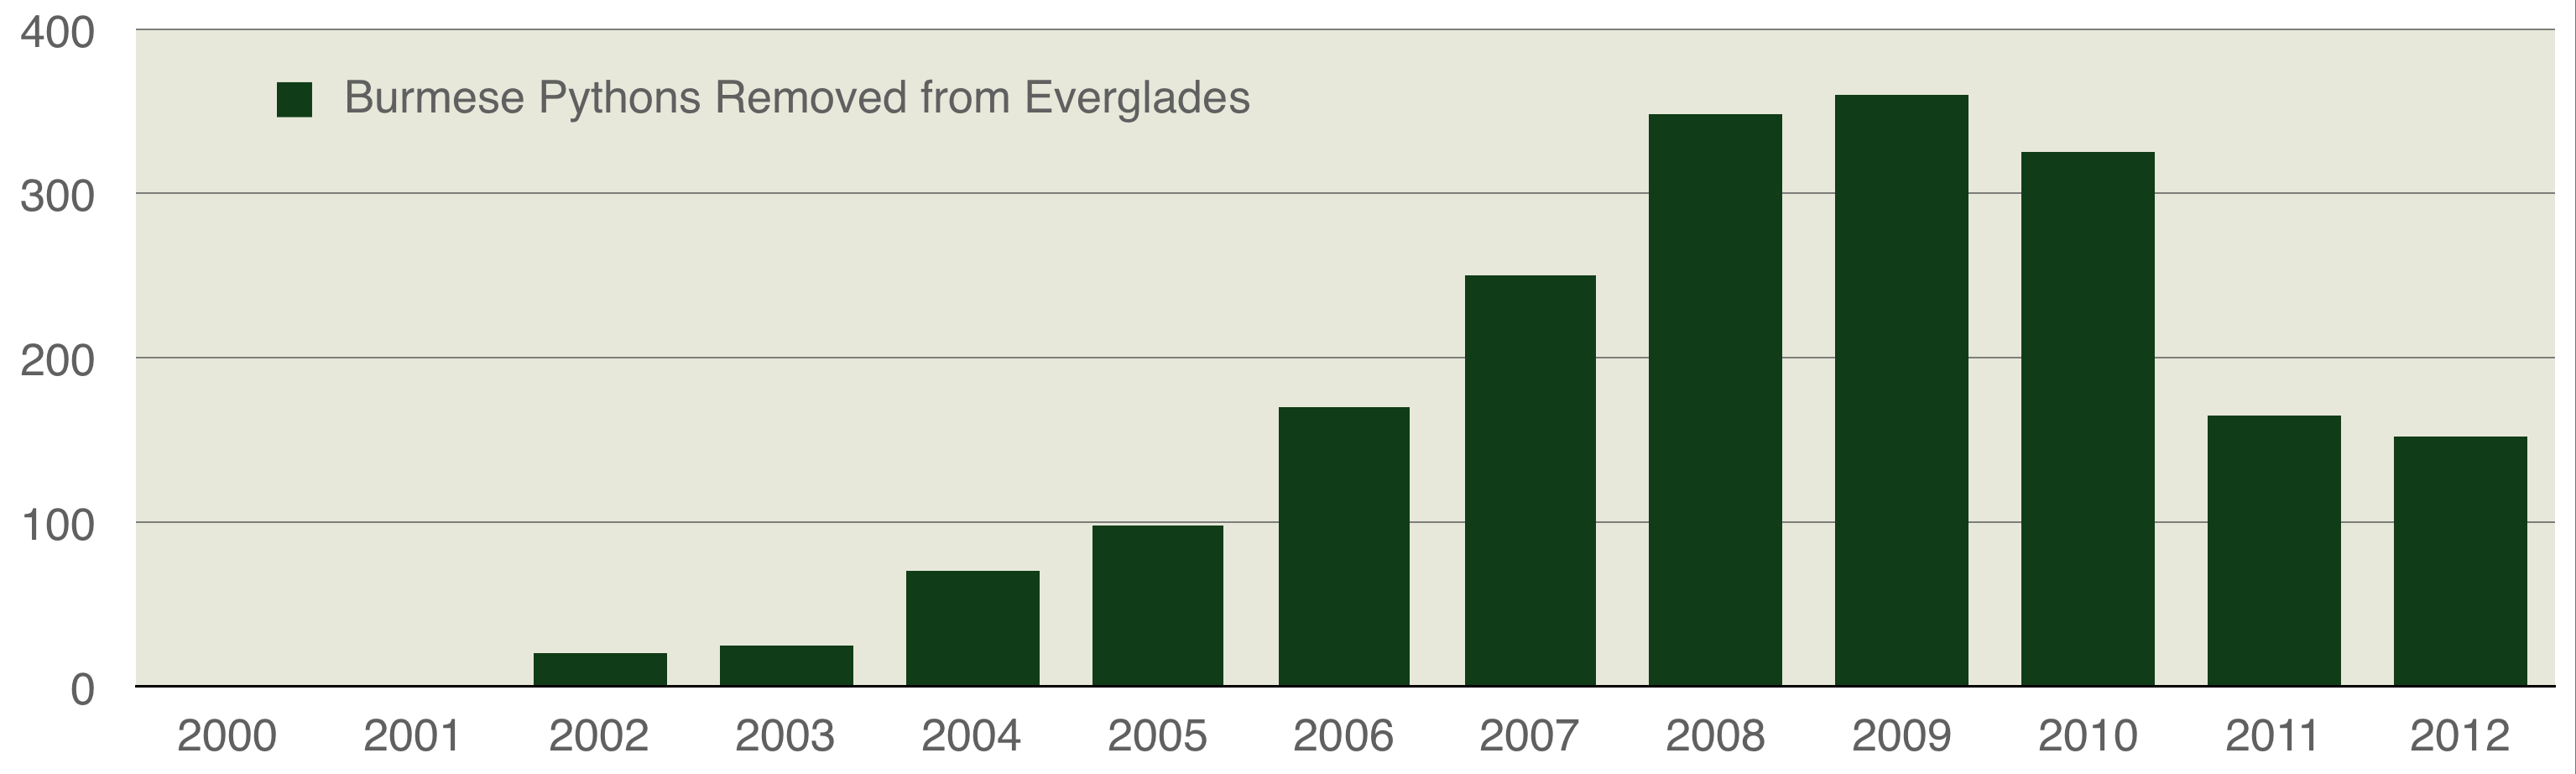 bar graph showing the number of pythons removed per year from the Florida Everglades with a peak in 2009